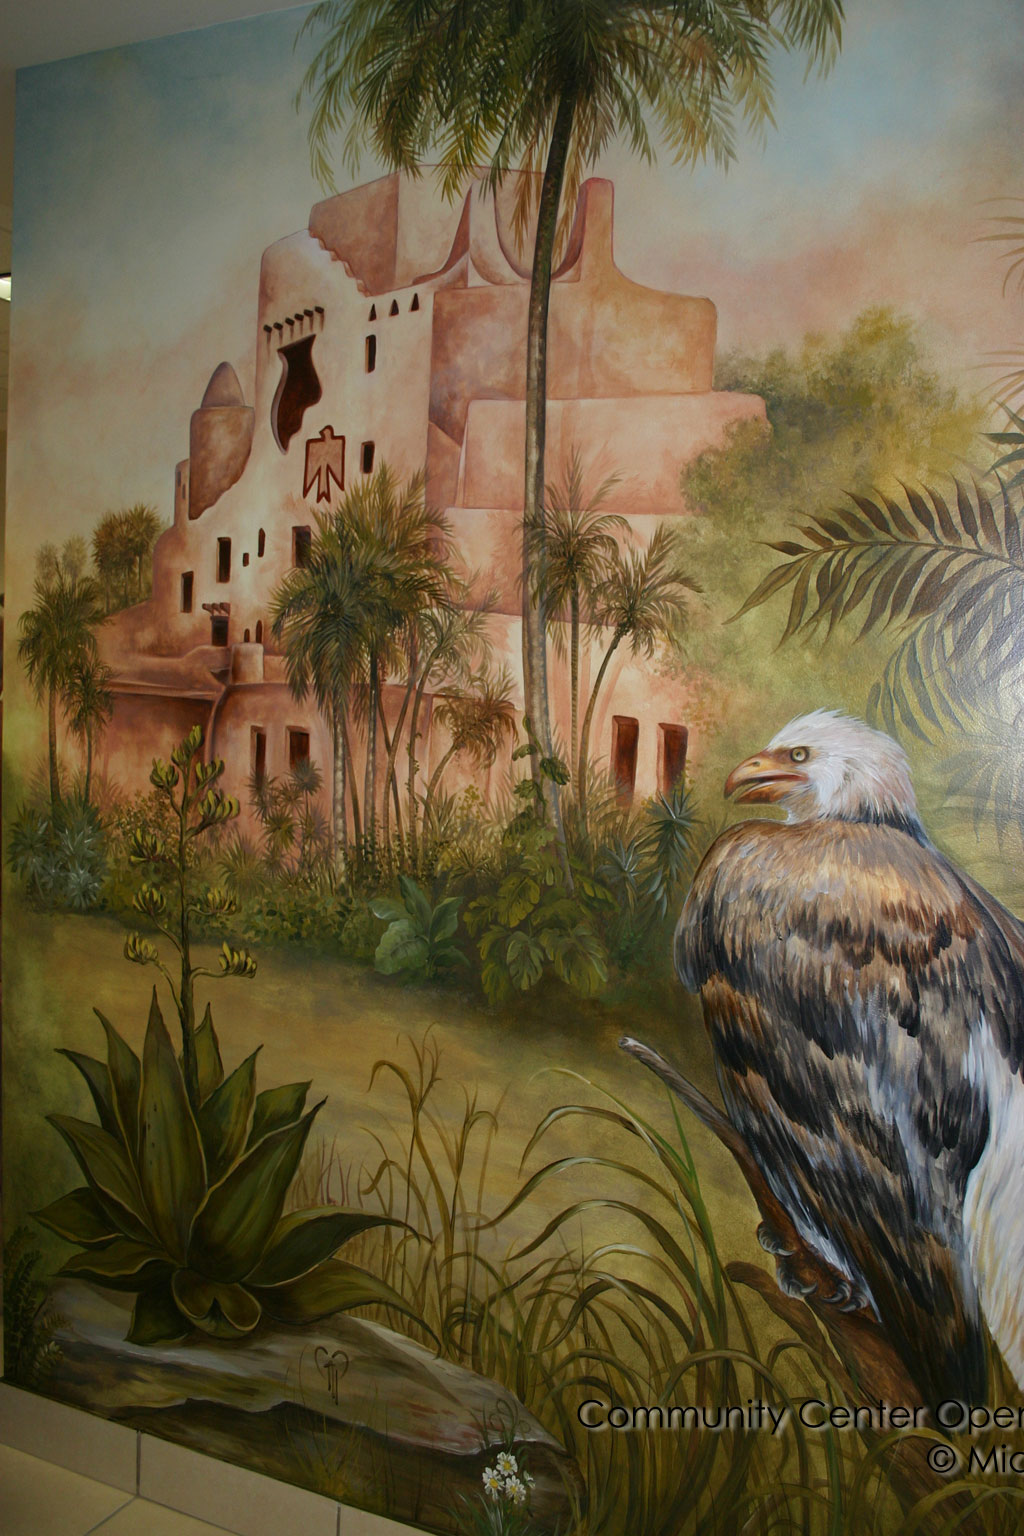 Mural of Fair Havens with a Bald Eagle in front